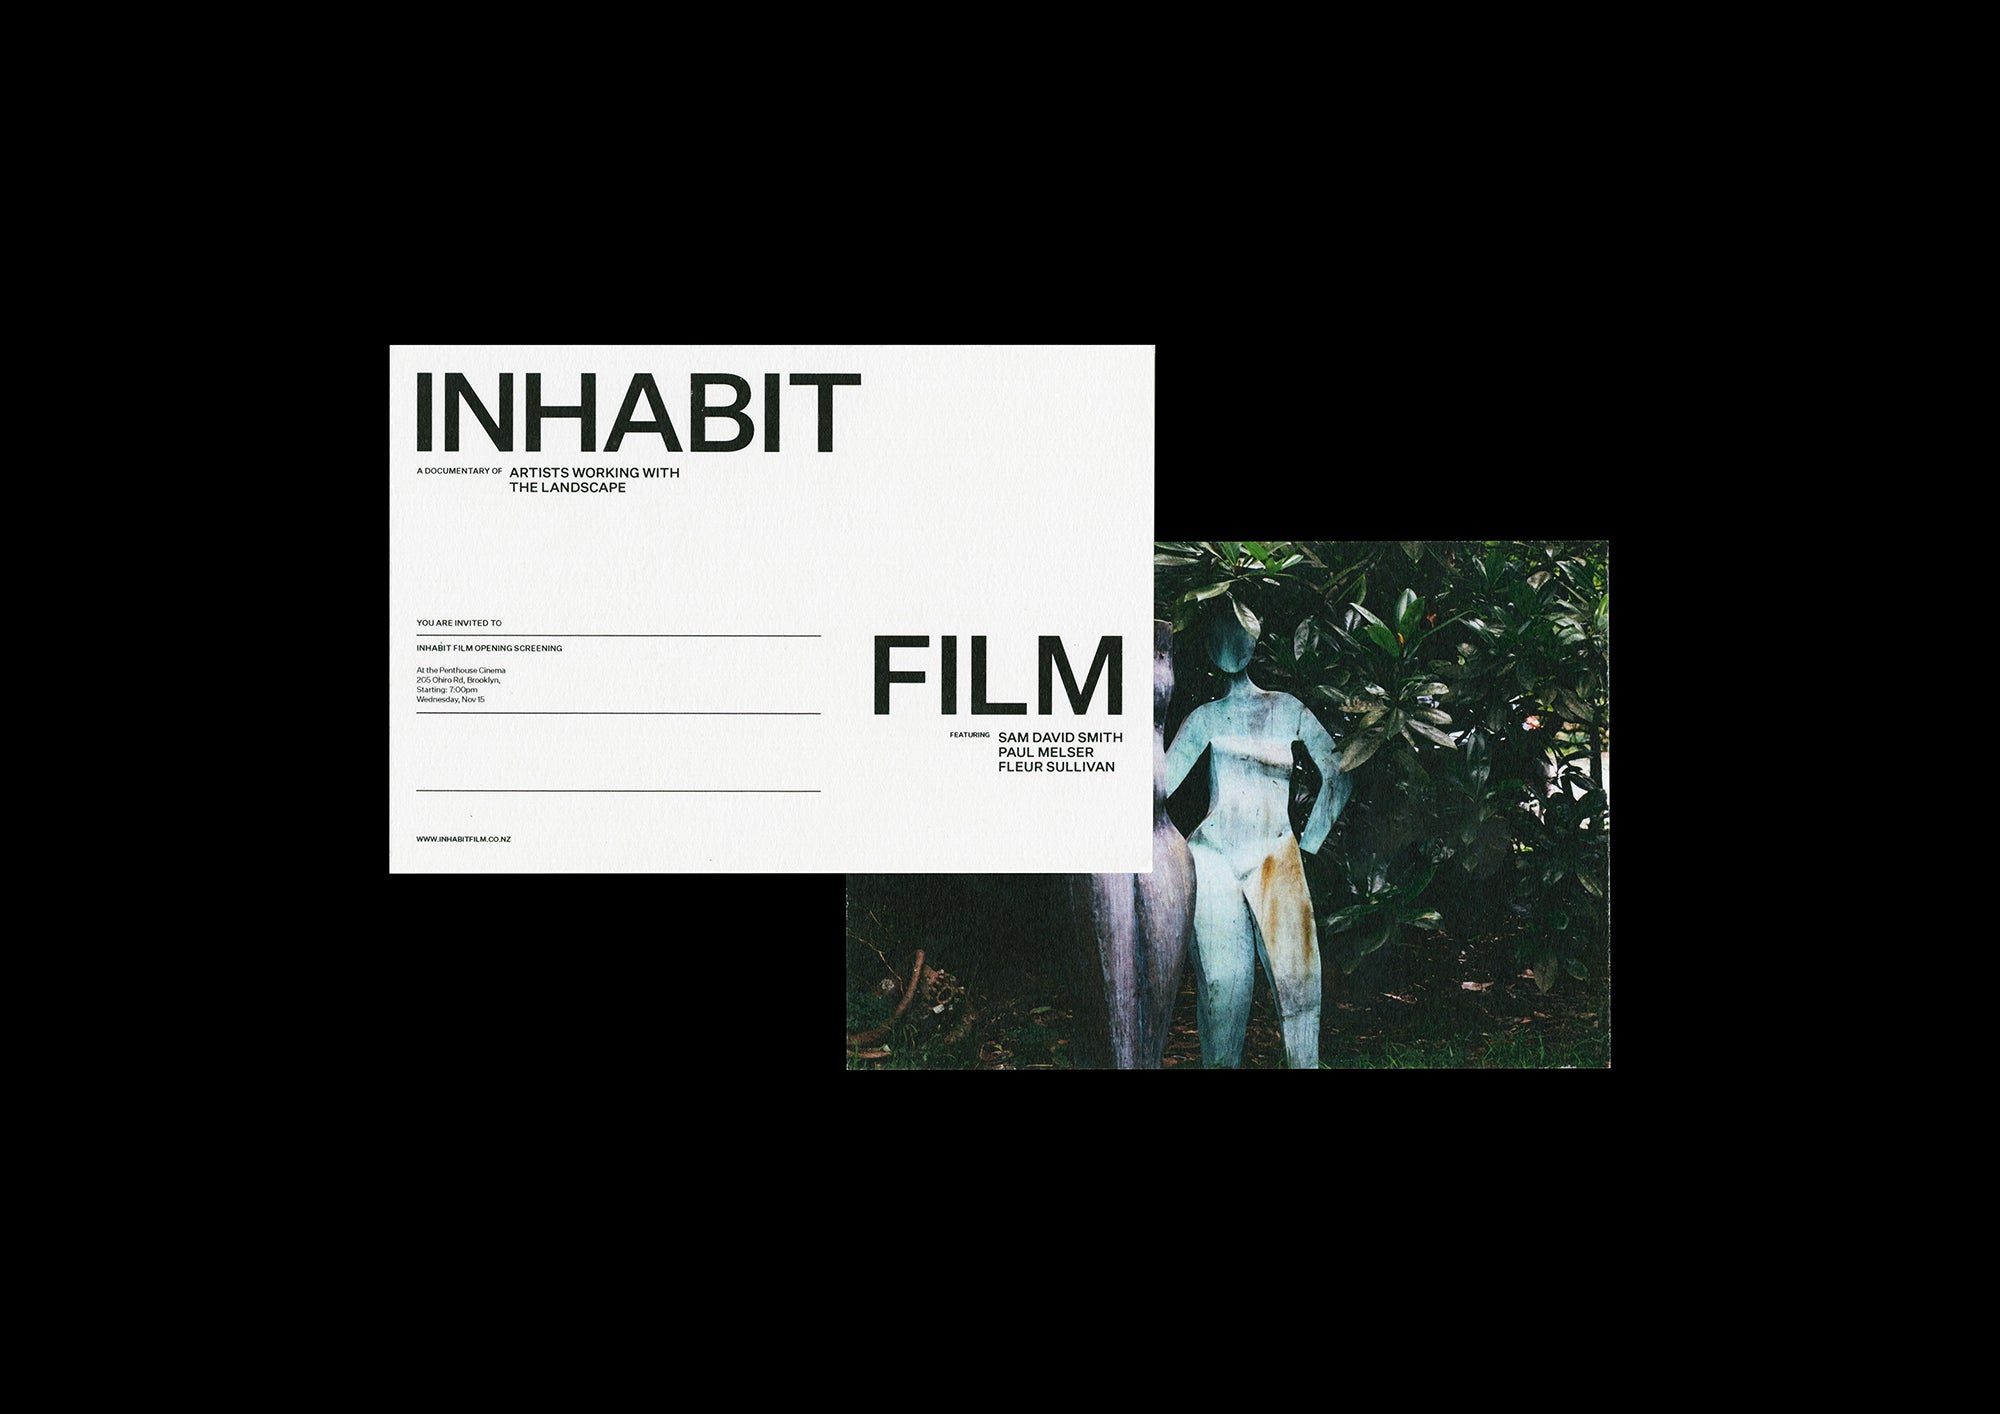 Jeremy Hooper: Inhabit